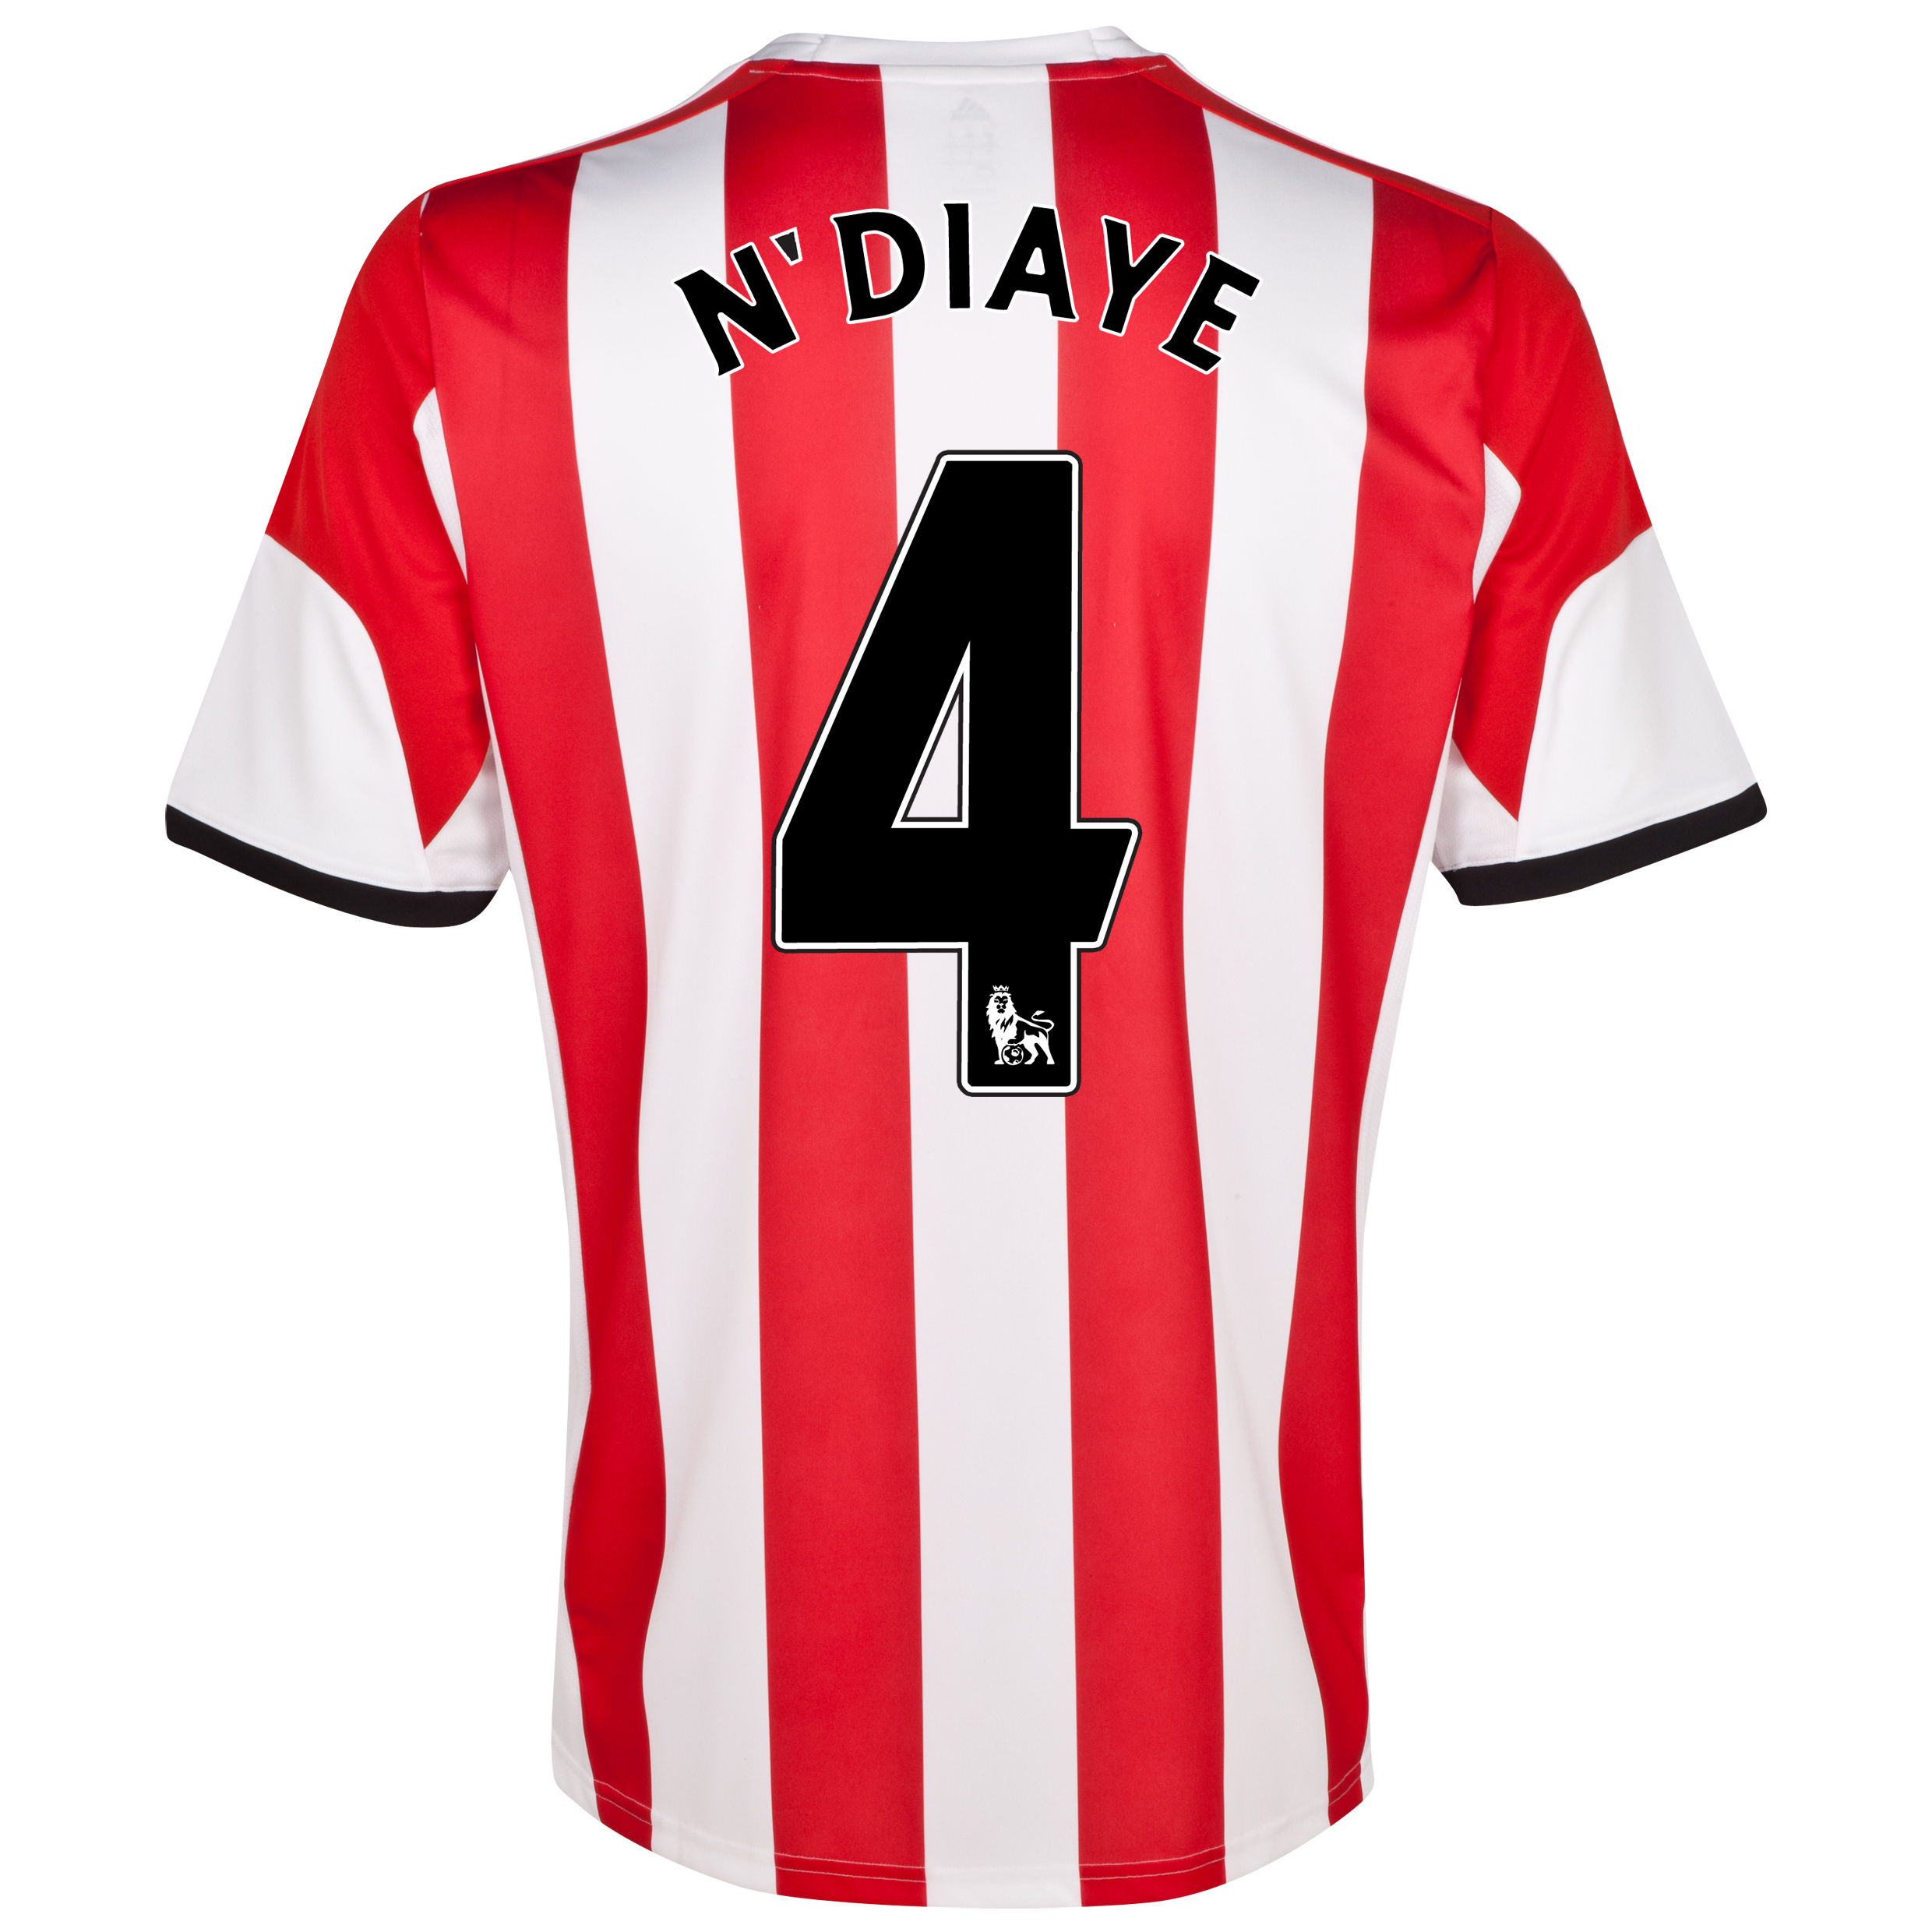 Sunderland Home Shirt 2013/14  with N'Diaye 4 printing